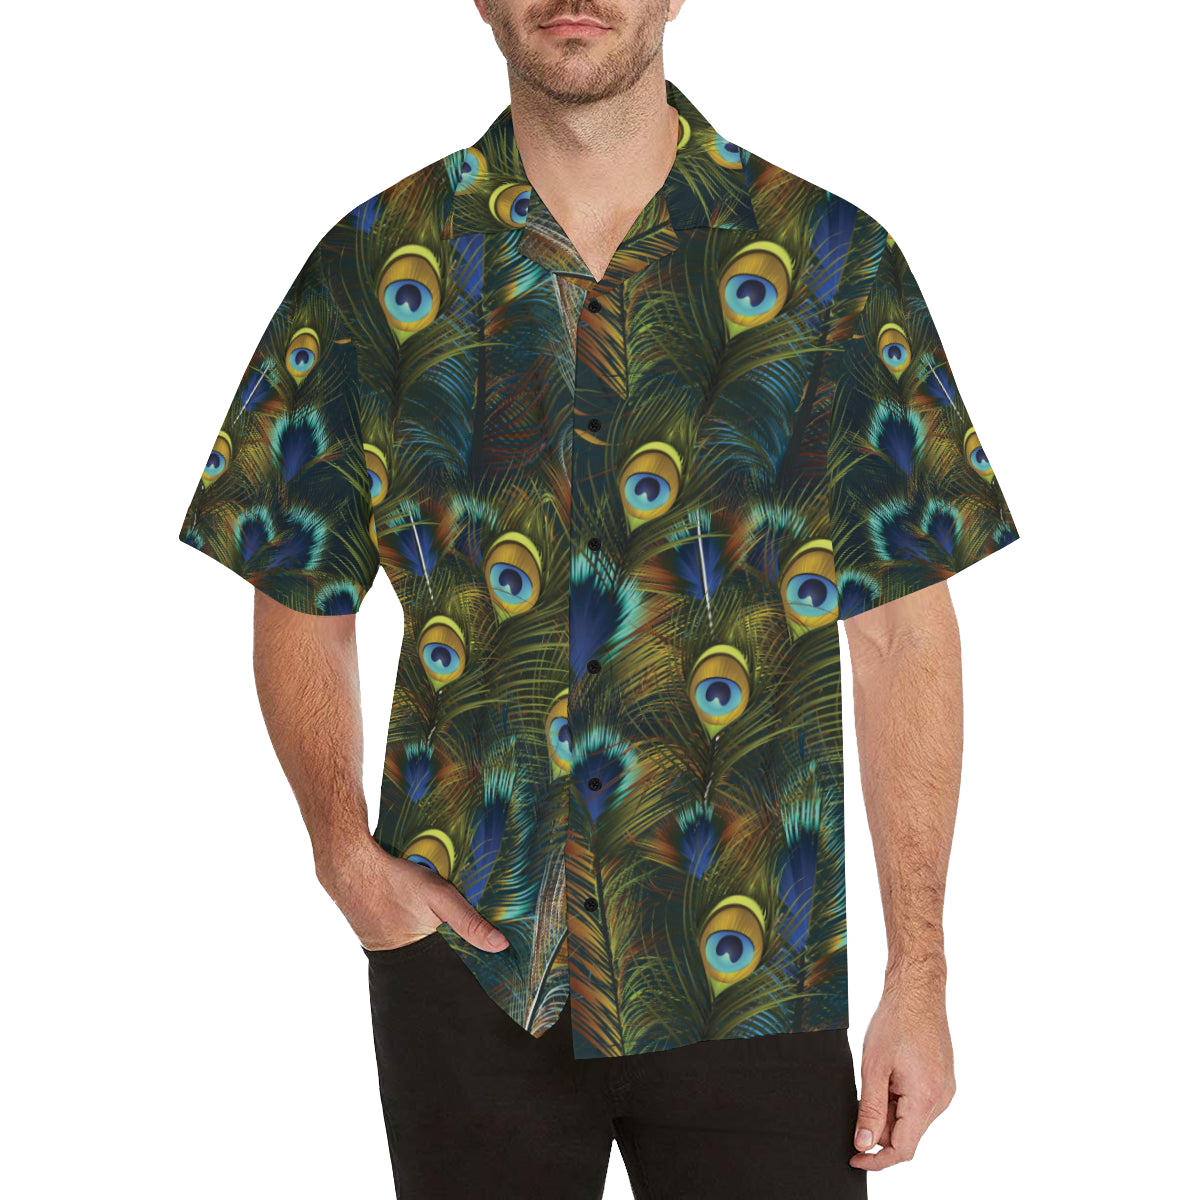 Peacock Feather Pattern Print Design A03 Hawaiian Shirt